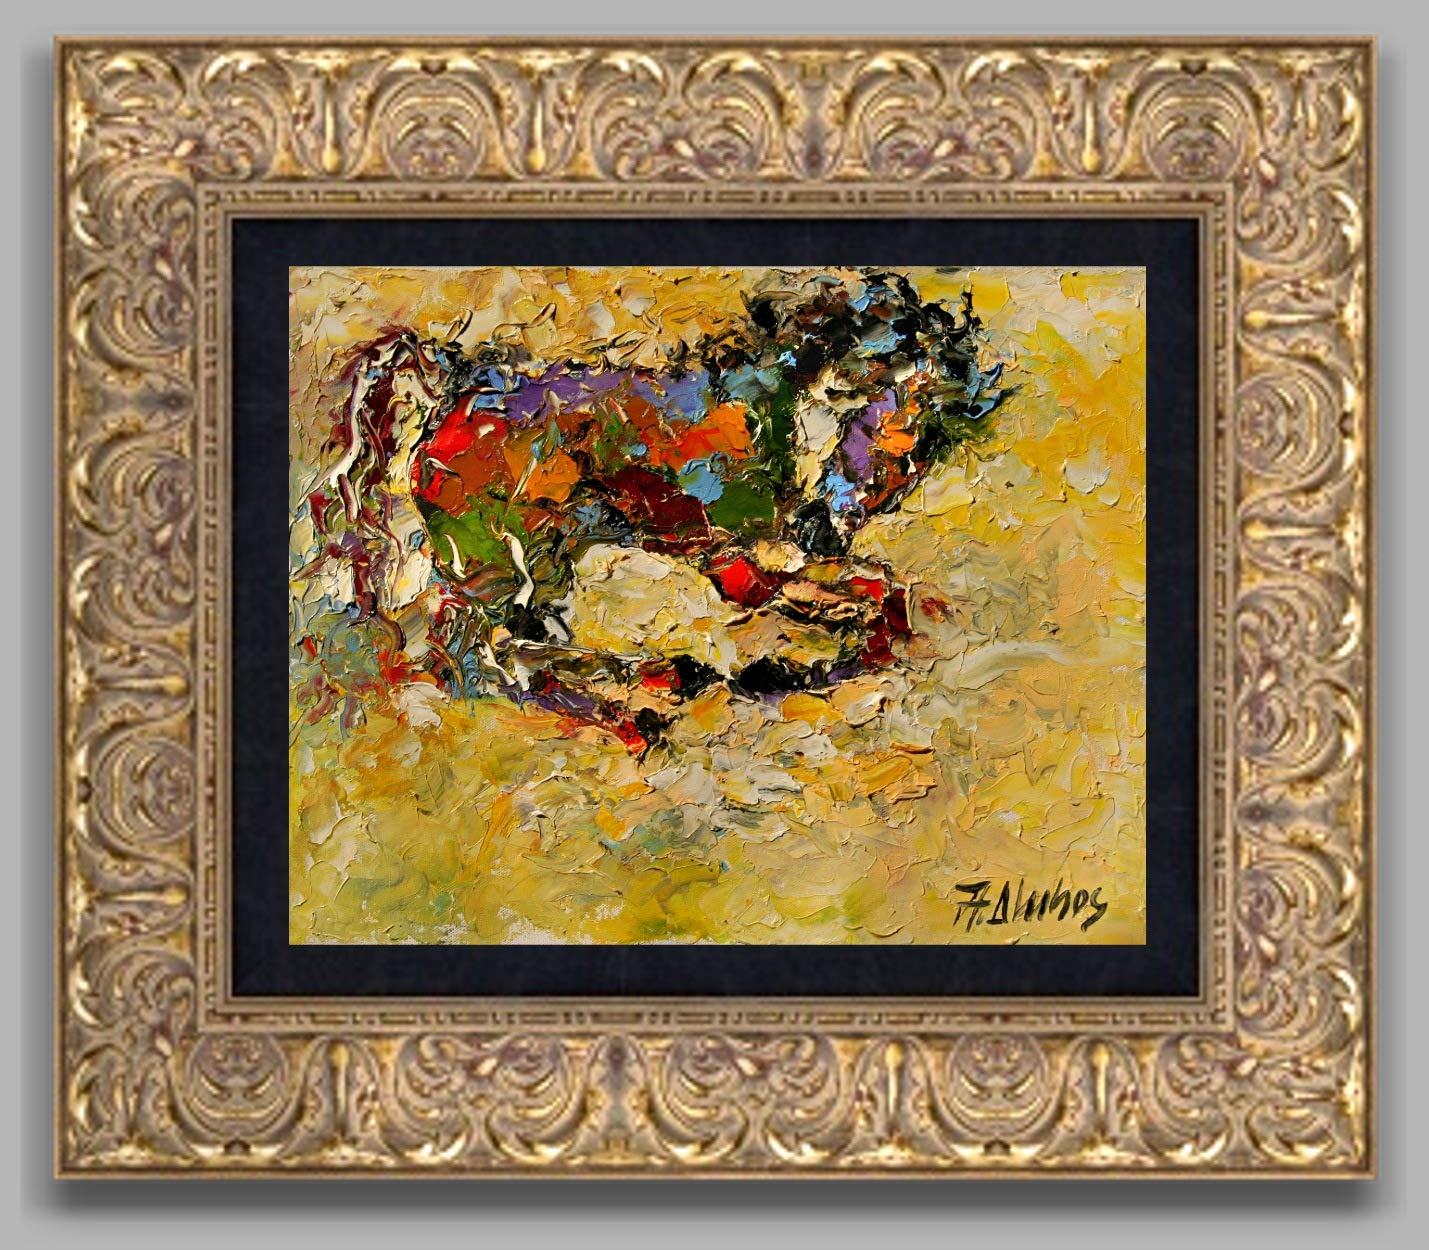 Valiant Equine horse painting by internationally renown painter Andre Dluhos